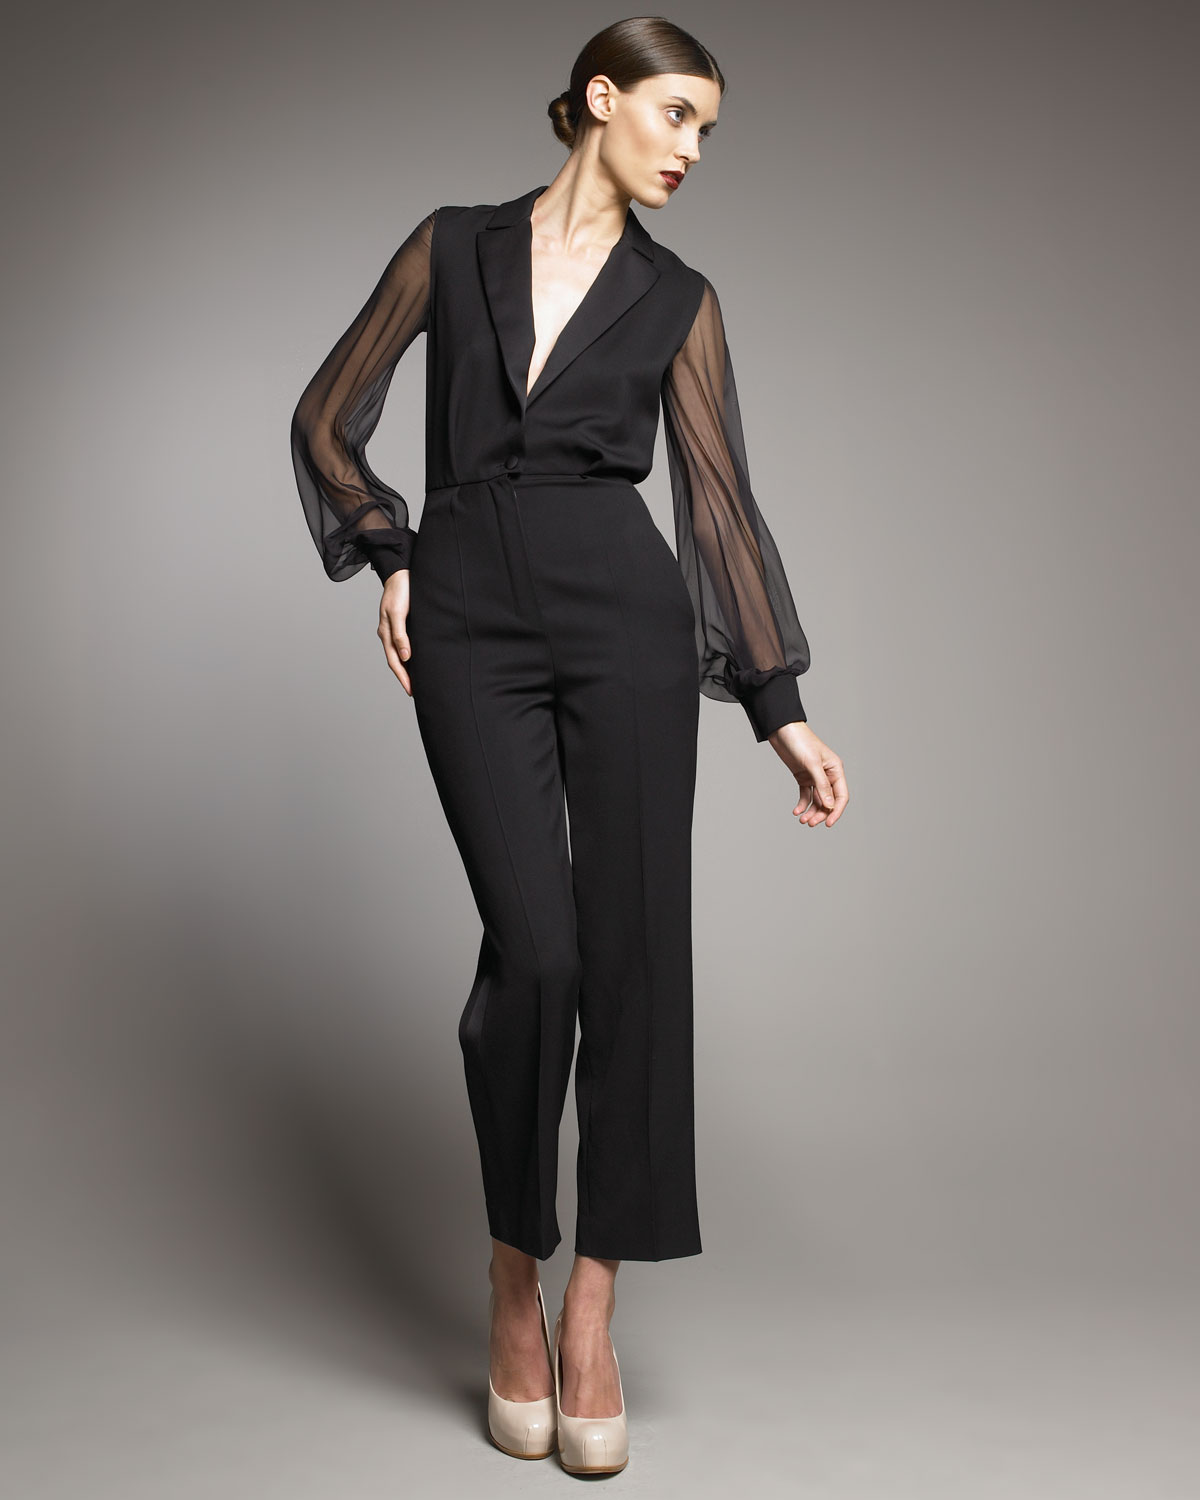 Saint laurent Sheer-sleeve Tuxedo Jumpsuit in Black | Lyst